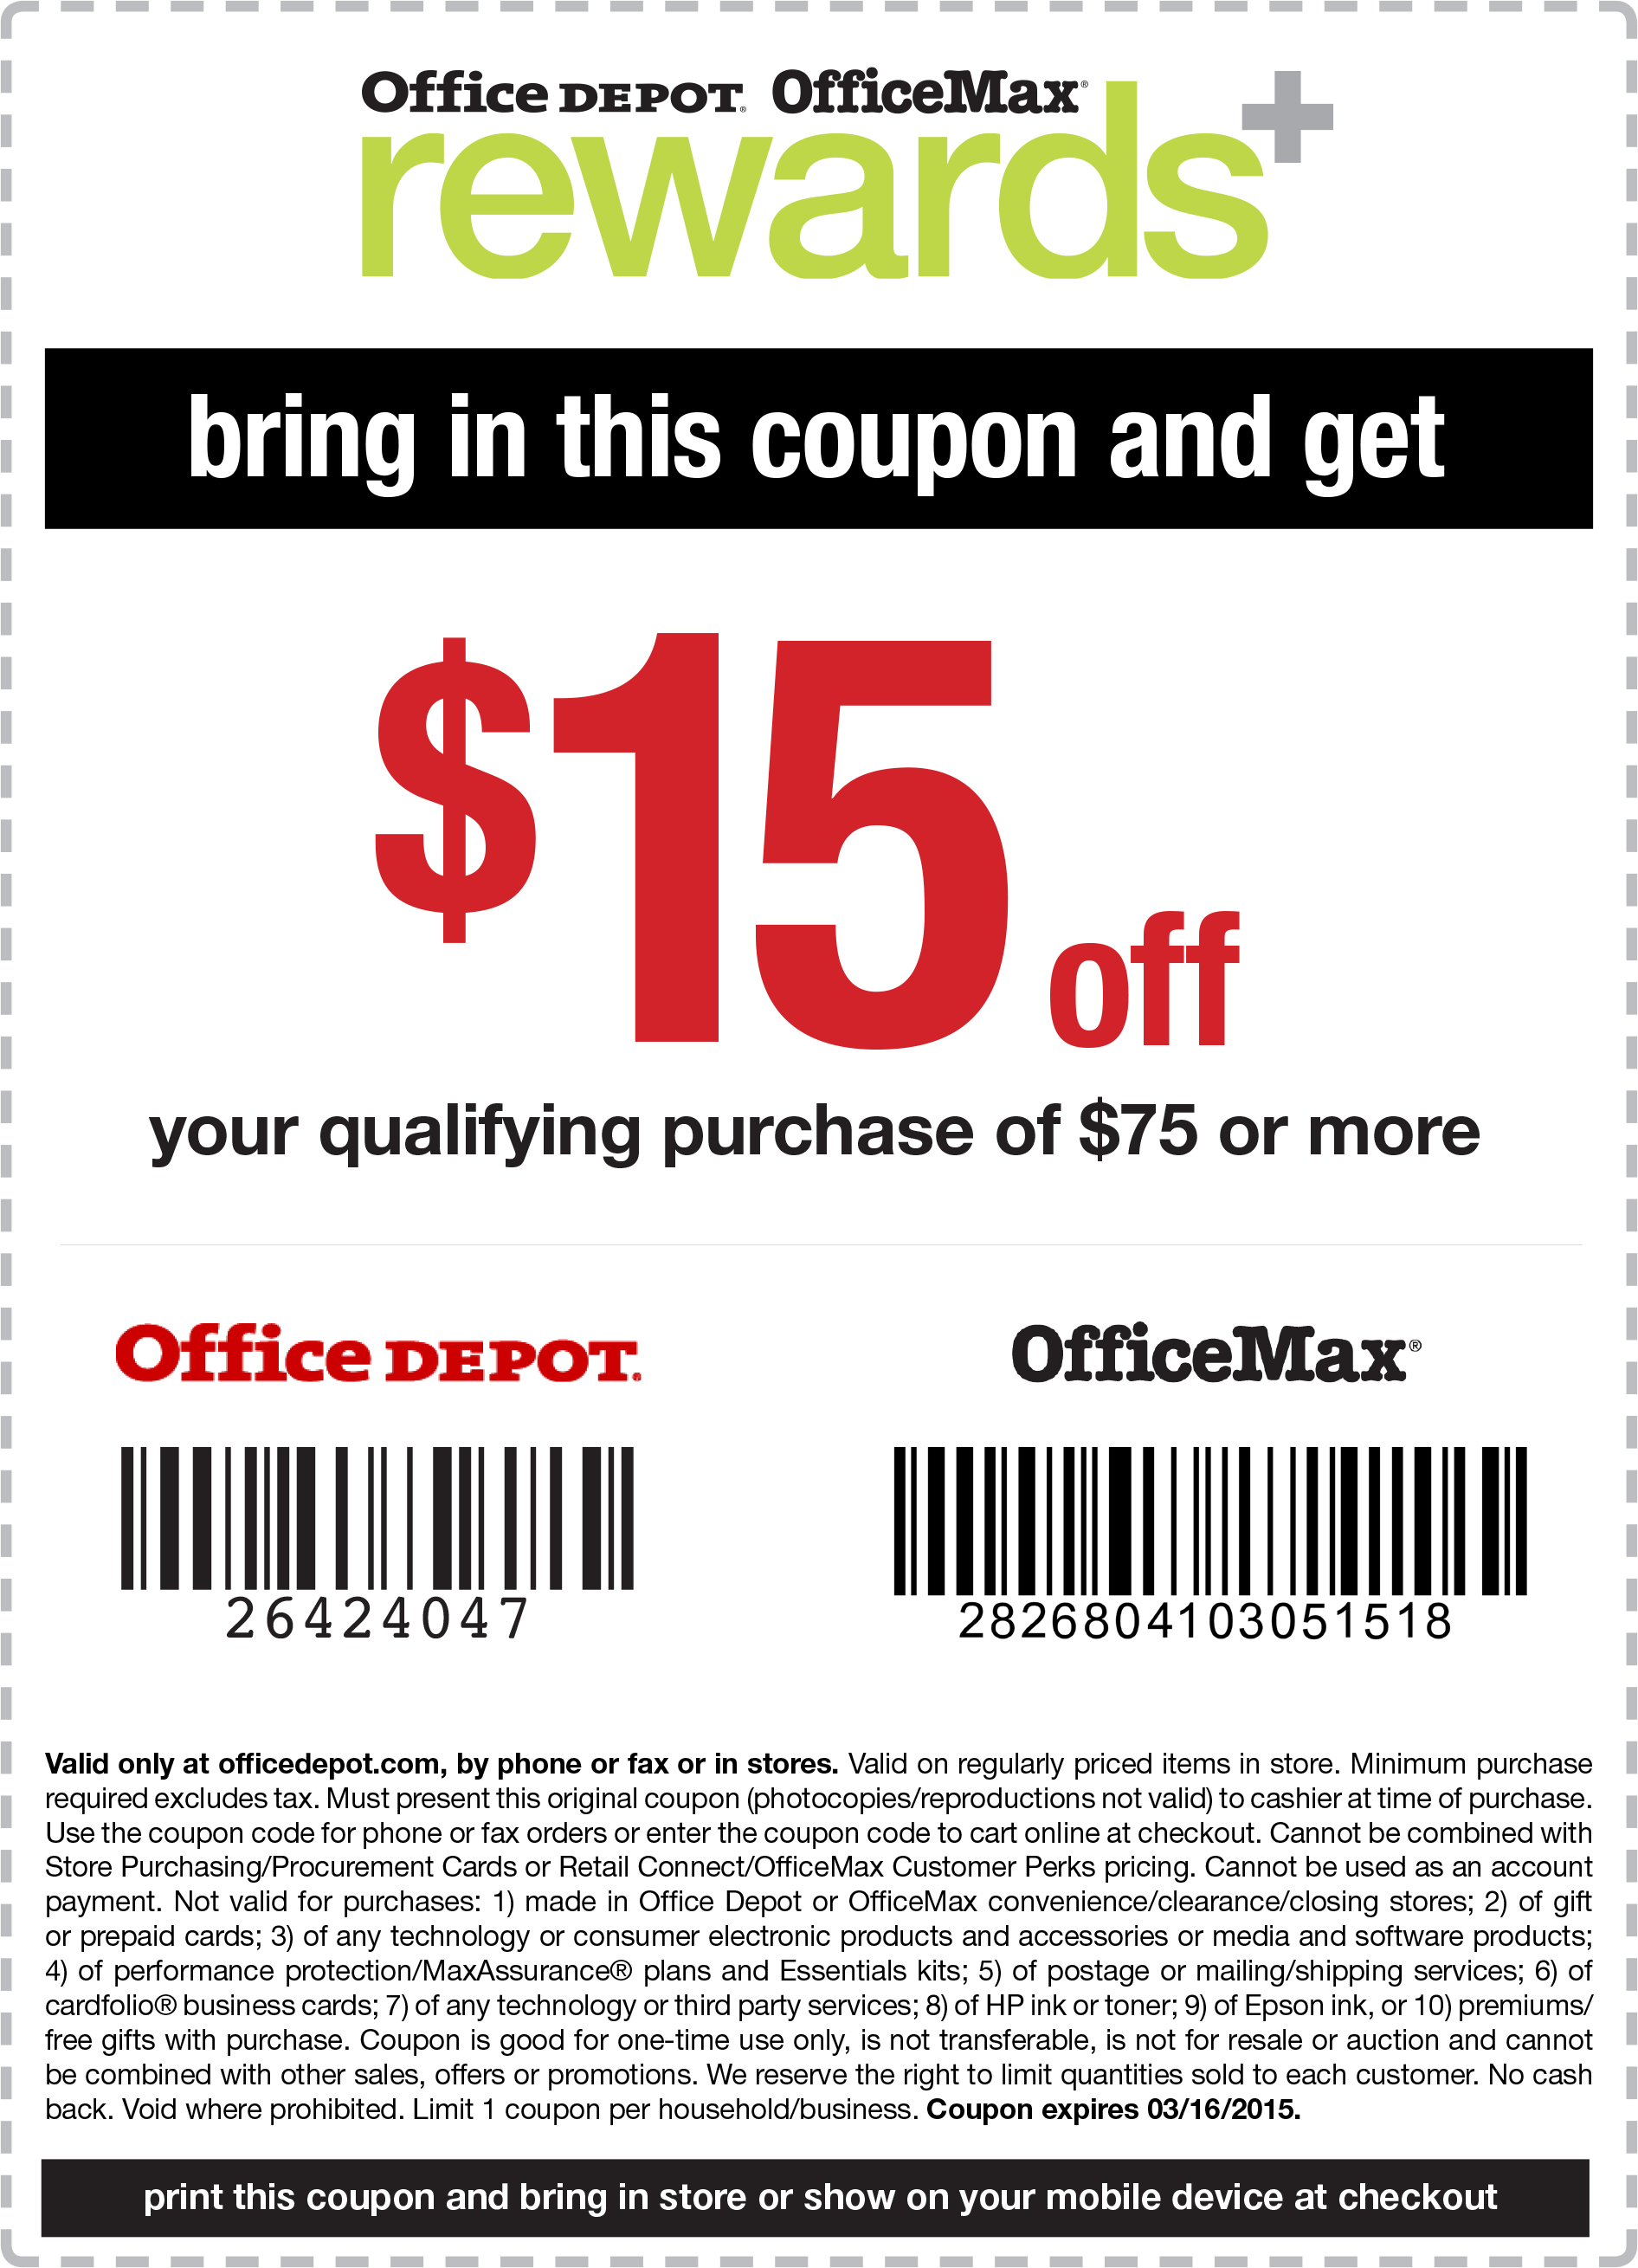 OfficeMax.com Promo Coupon $15 off $75 at Office Depot & OfficeMax, or online via promo code 26424047